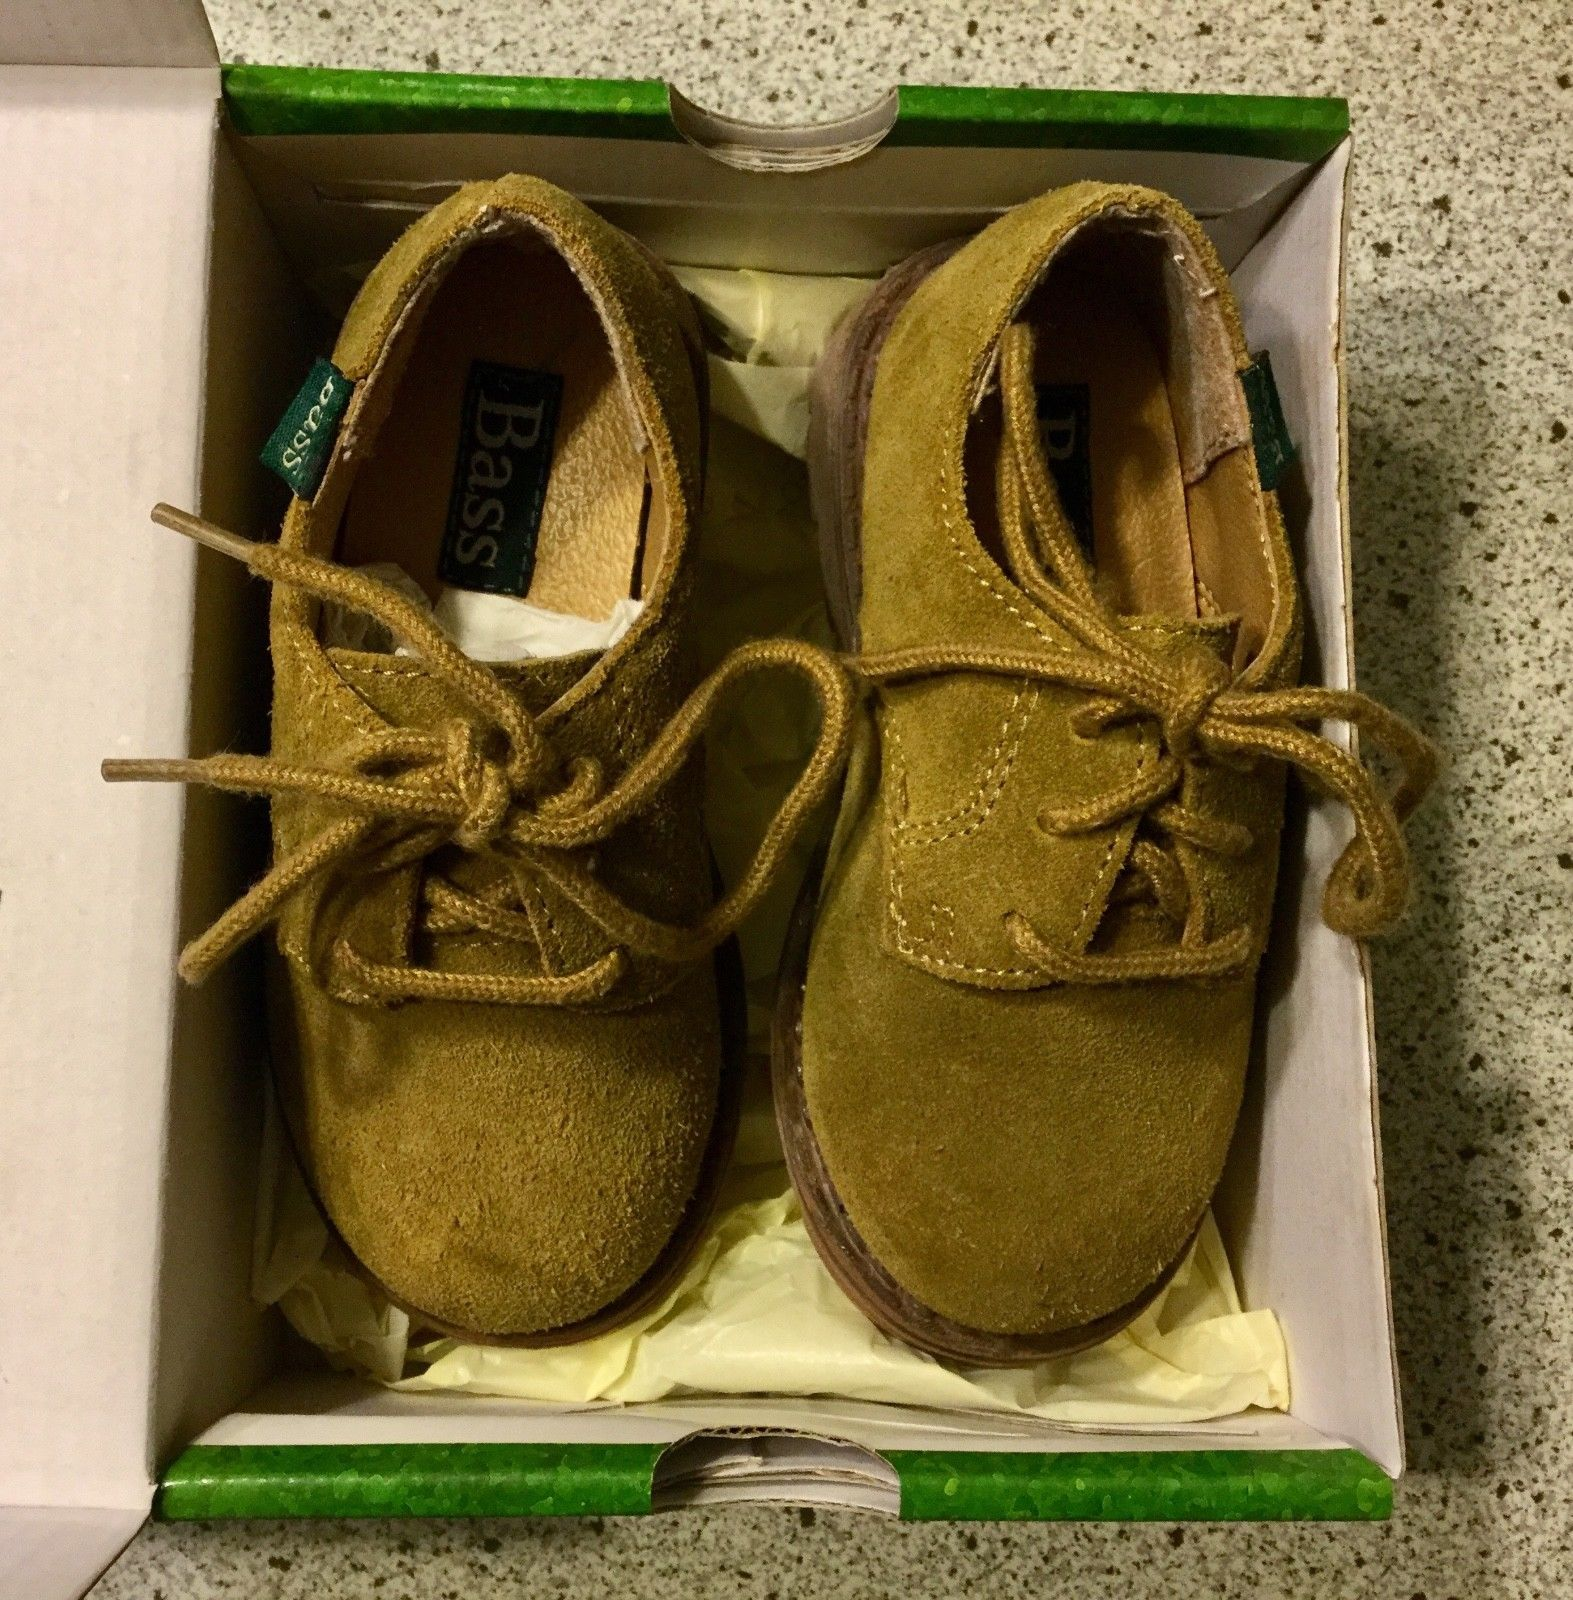 Baby Bass Tan Bucky II 2 Boys Shoes Size 8 M Leather 6547-261 With Box